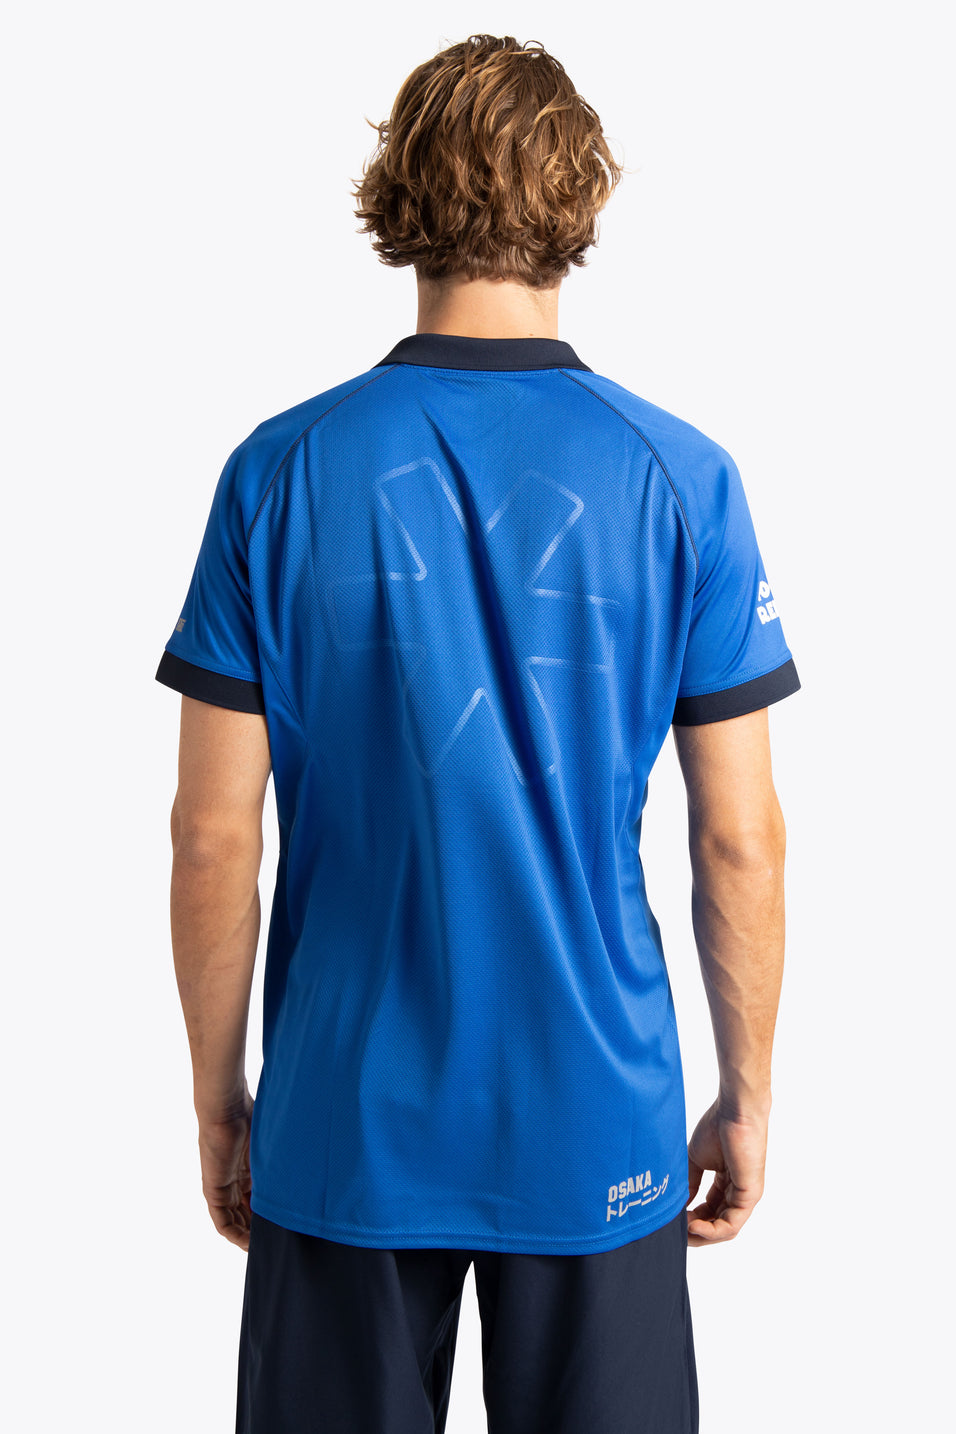 BH&BC Breda Men Polo Jersey - Royal Blue